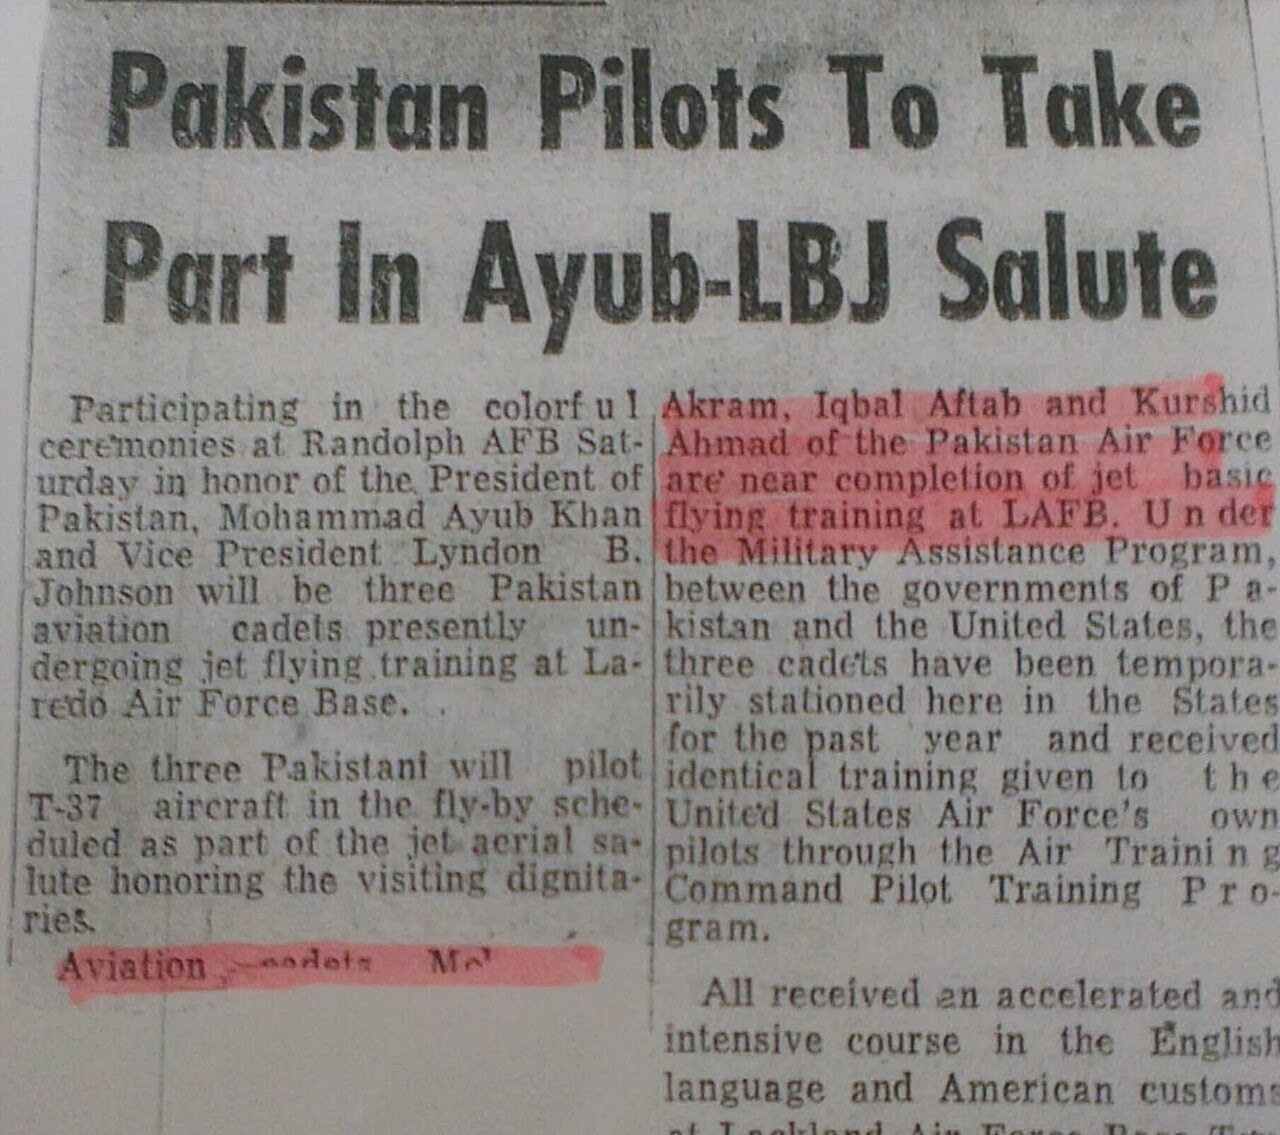 AVM Aftab took part in Ayub-LBJ Salute -1961